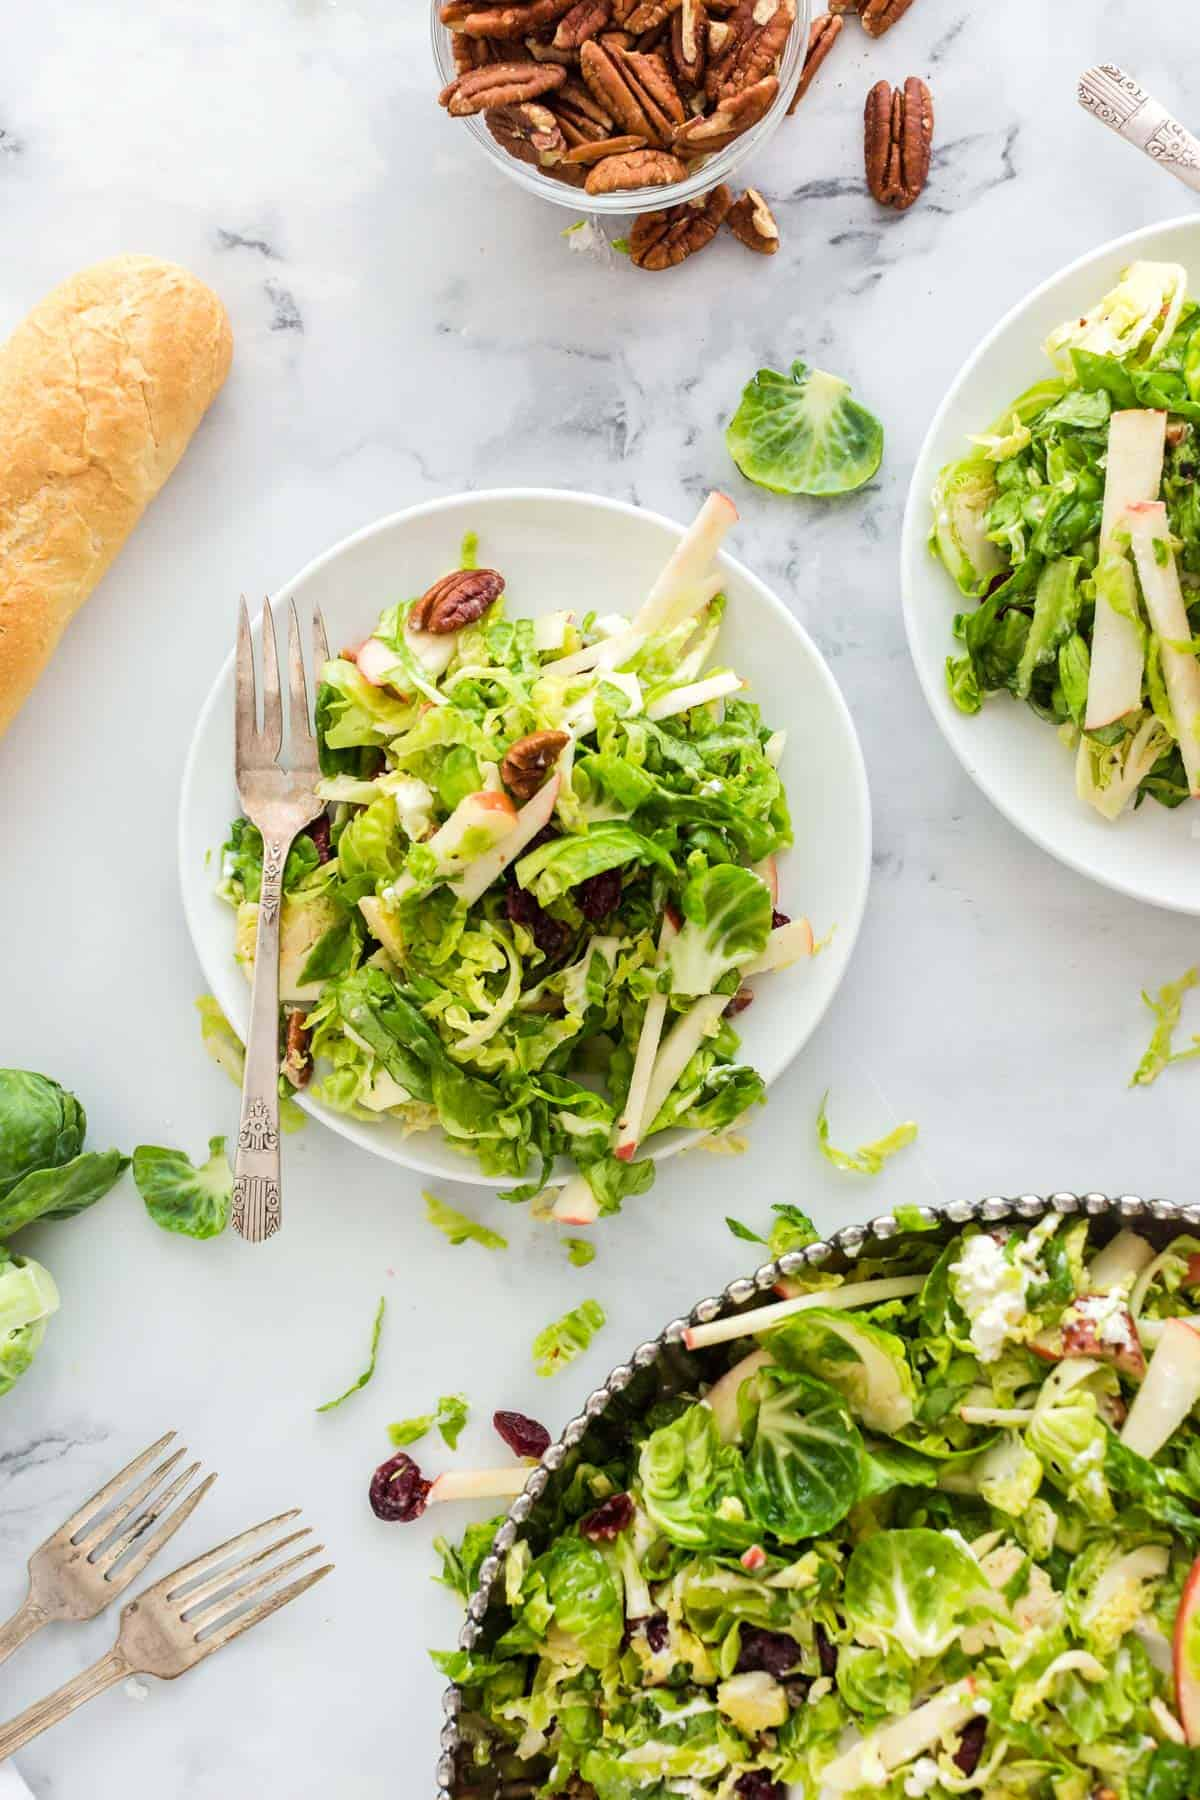 Three bowls of Brussels sprouts salad with walnuts and a baguette of bread